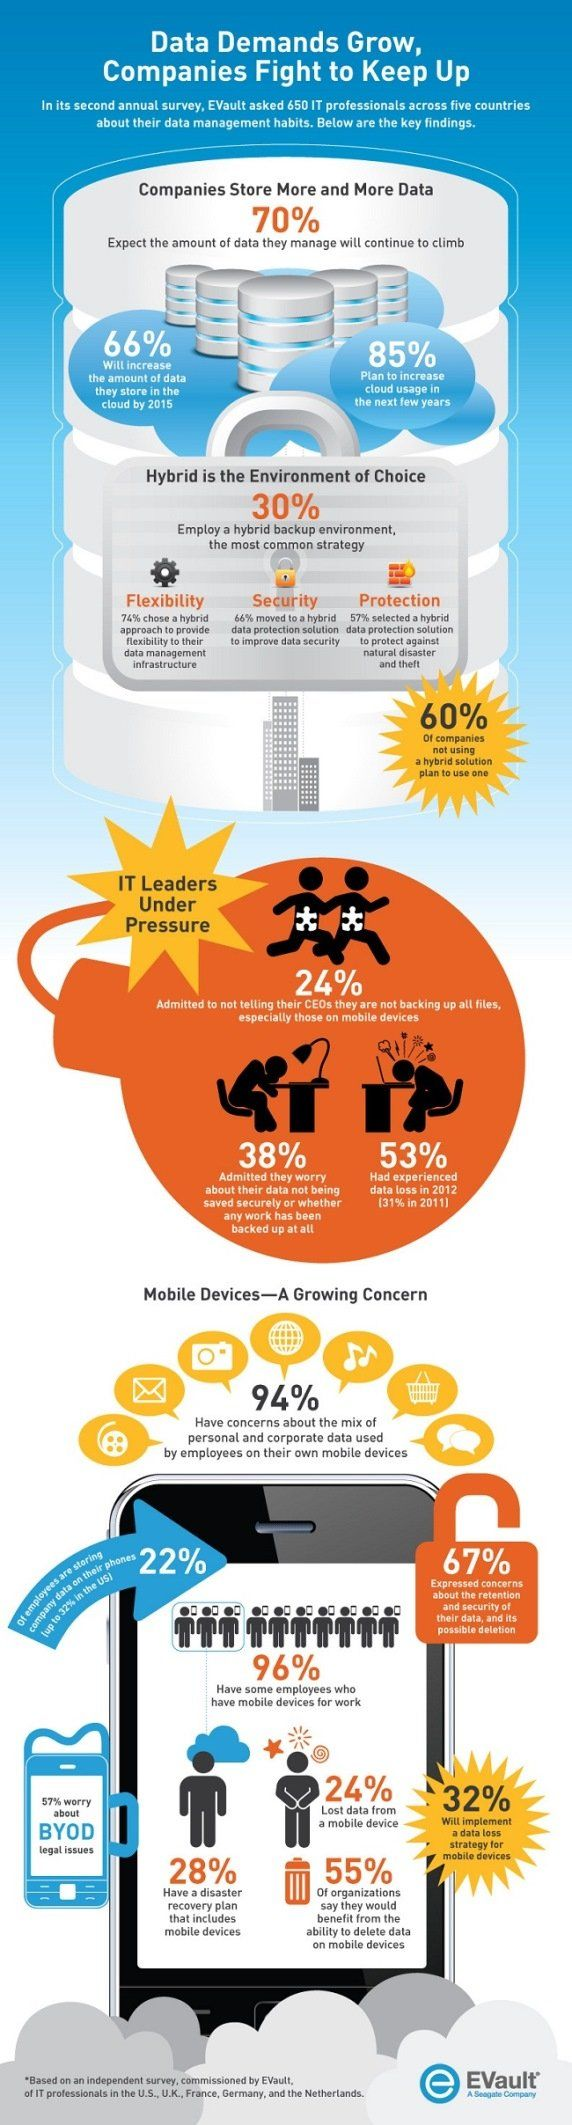 Companies store more and more data cloud infographic